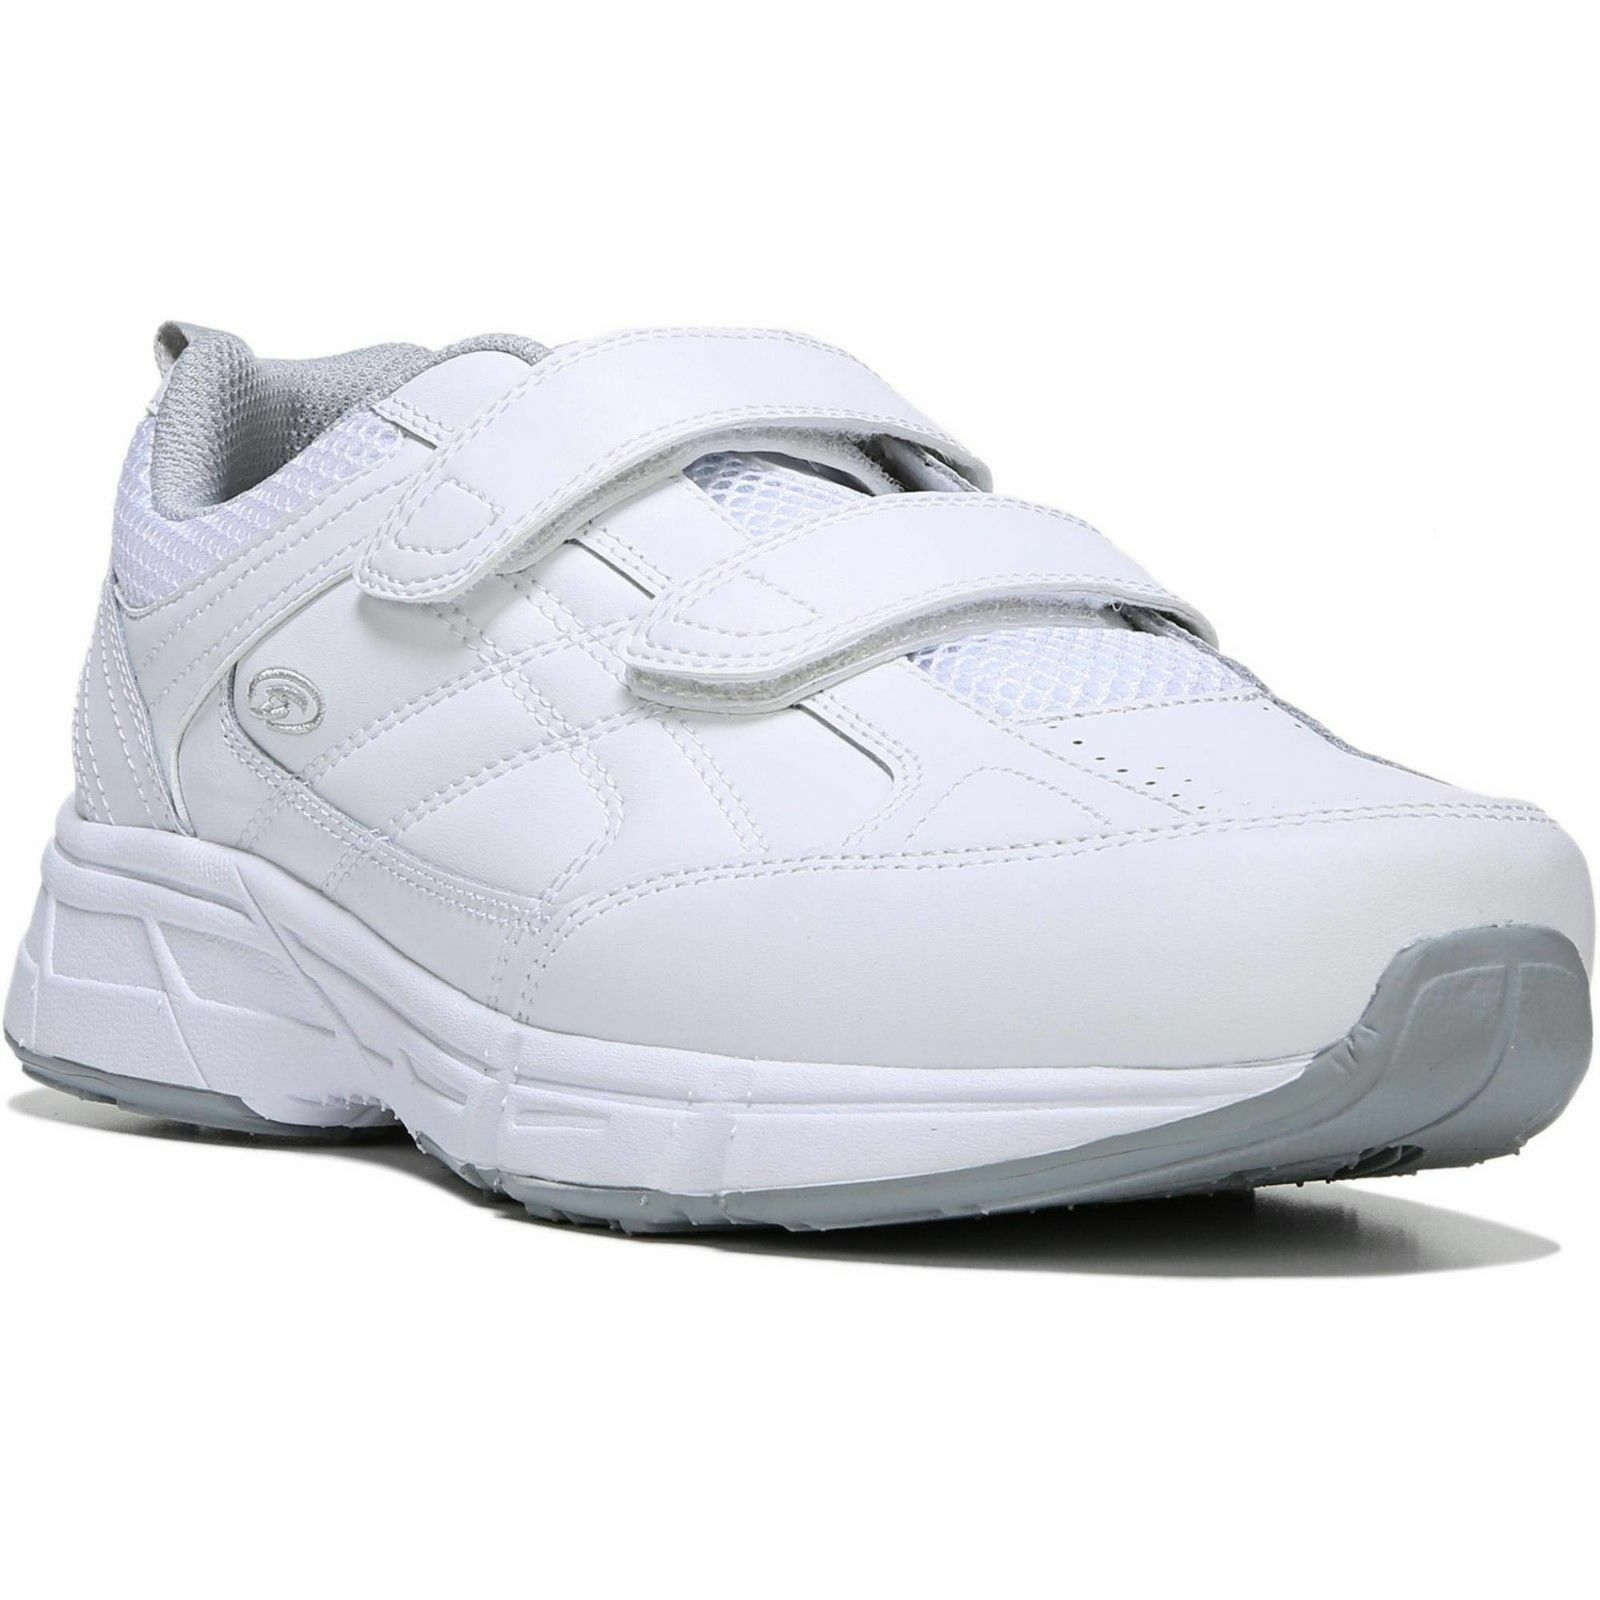 New with Tags, w/o Box Dr. Scholls Mens Brisk WW Wide-Width Athletic Shoes,WHITE